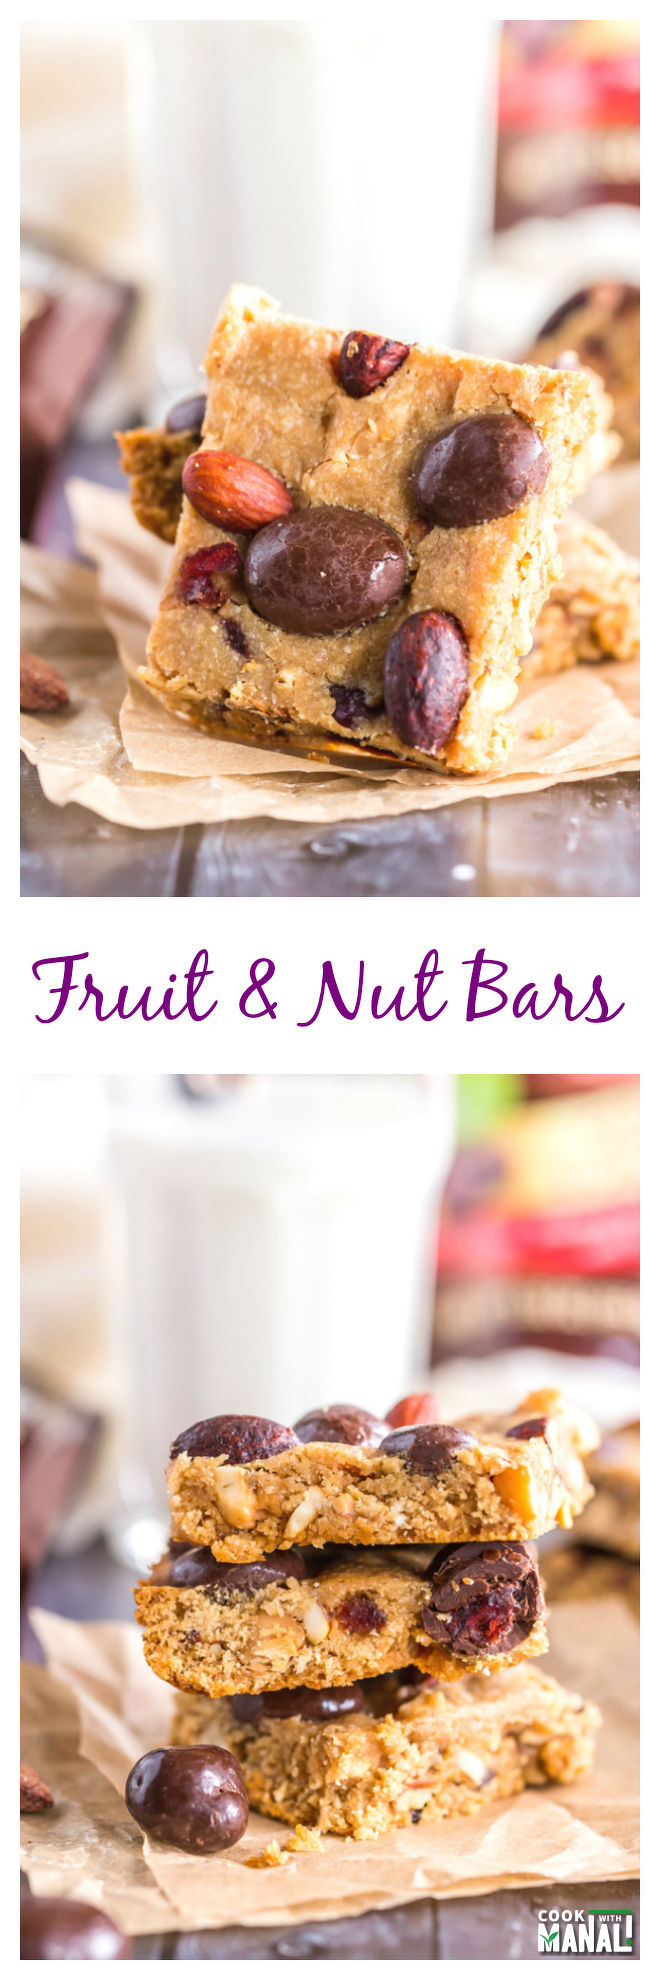 Fruit-Nut-Bars-Collage